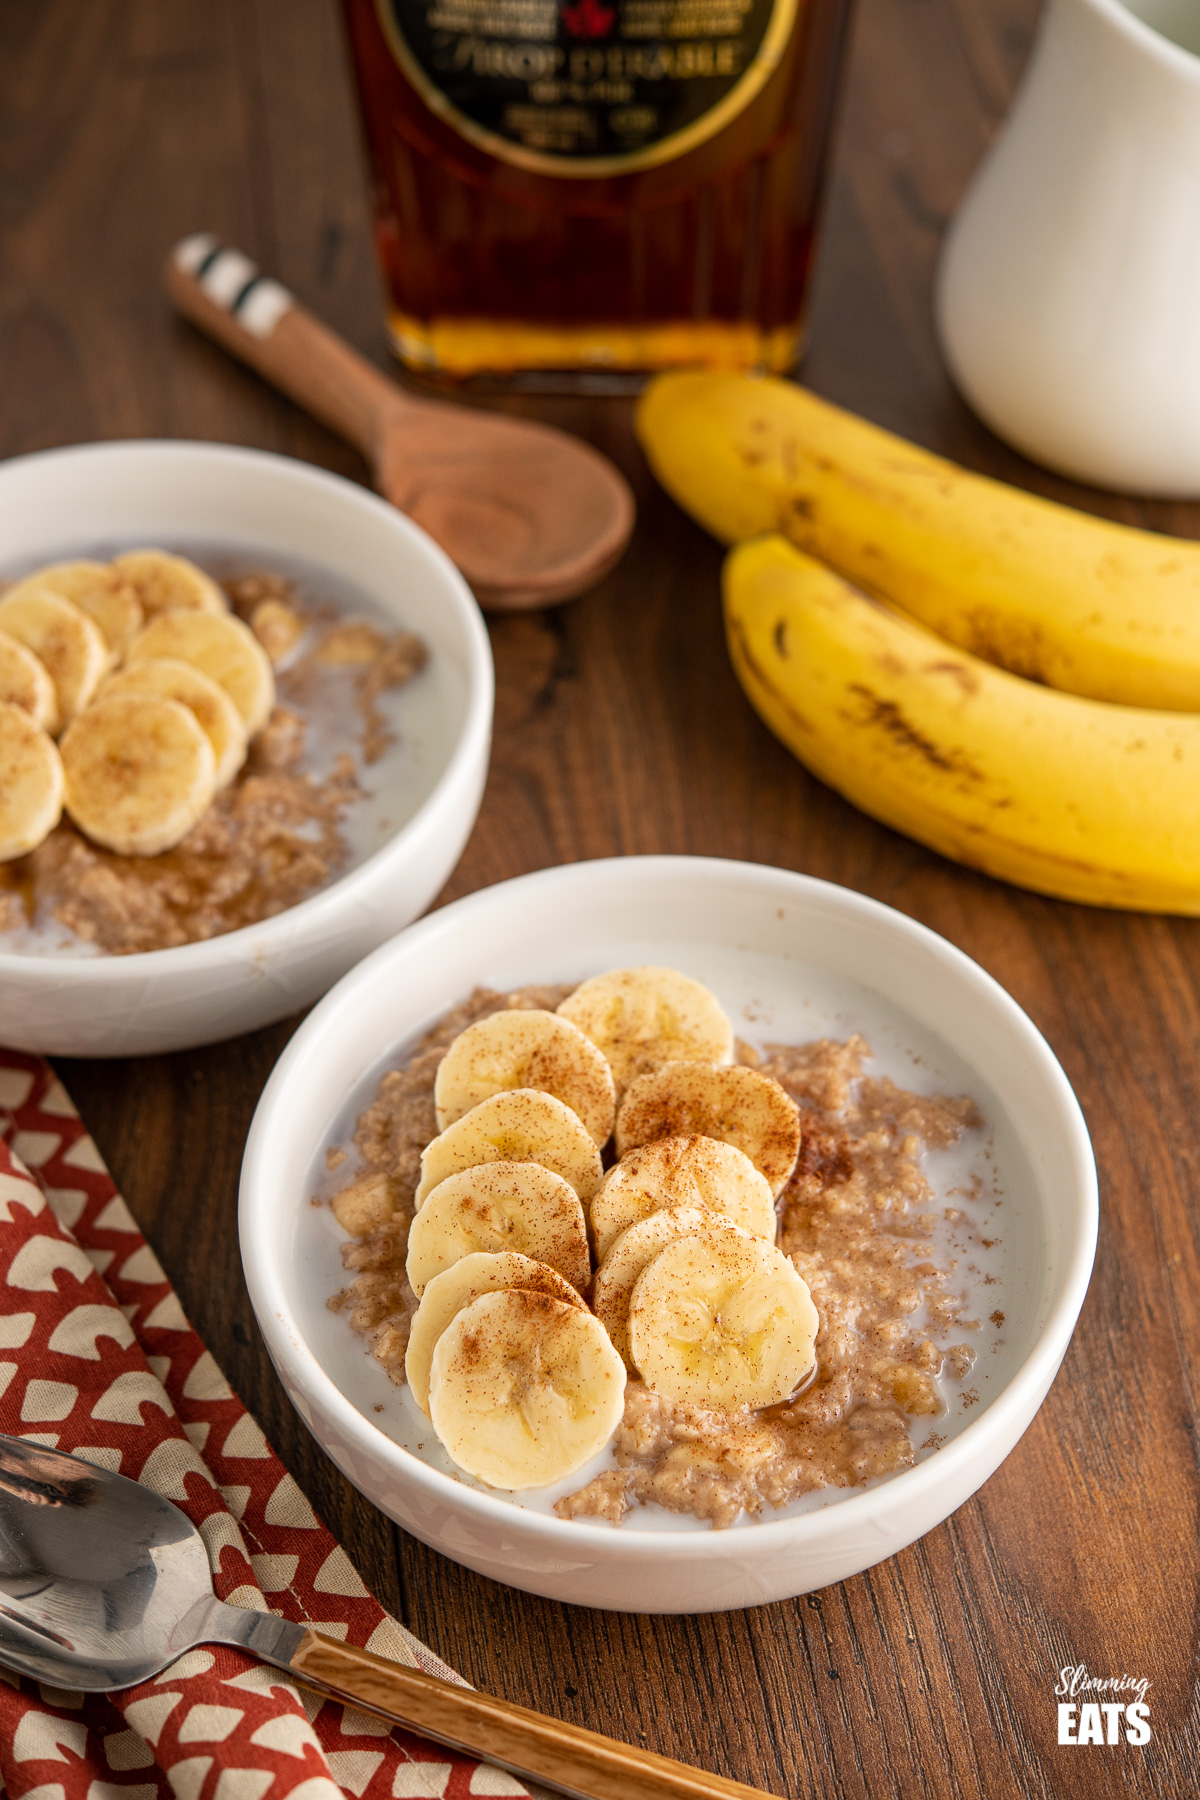 two bowls of creamy milky oatmeal topped with slices of banana, cinnamon and a drizzle of maple syrup, two banans and maple syrup bottle in the background